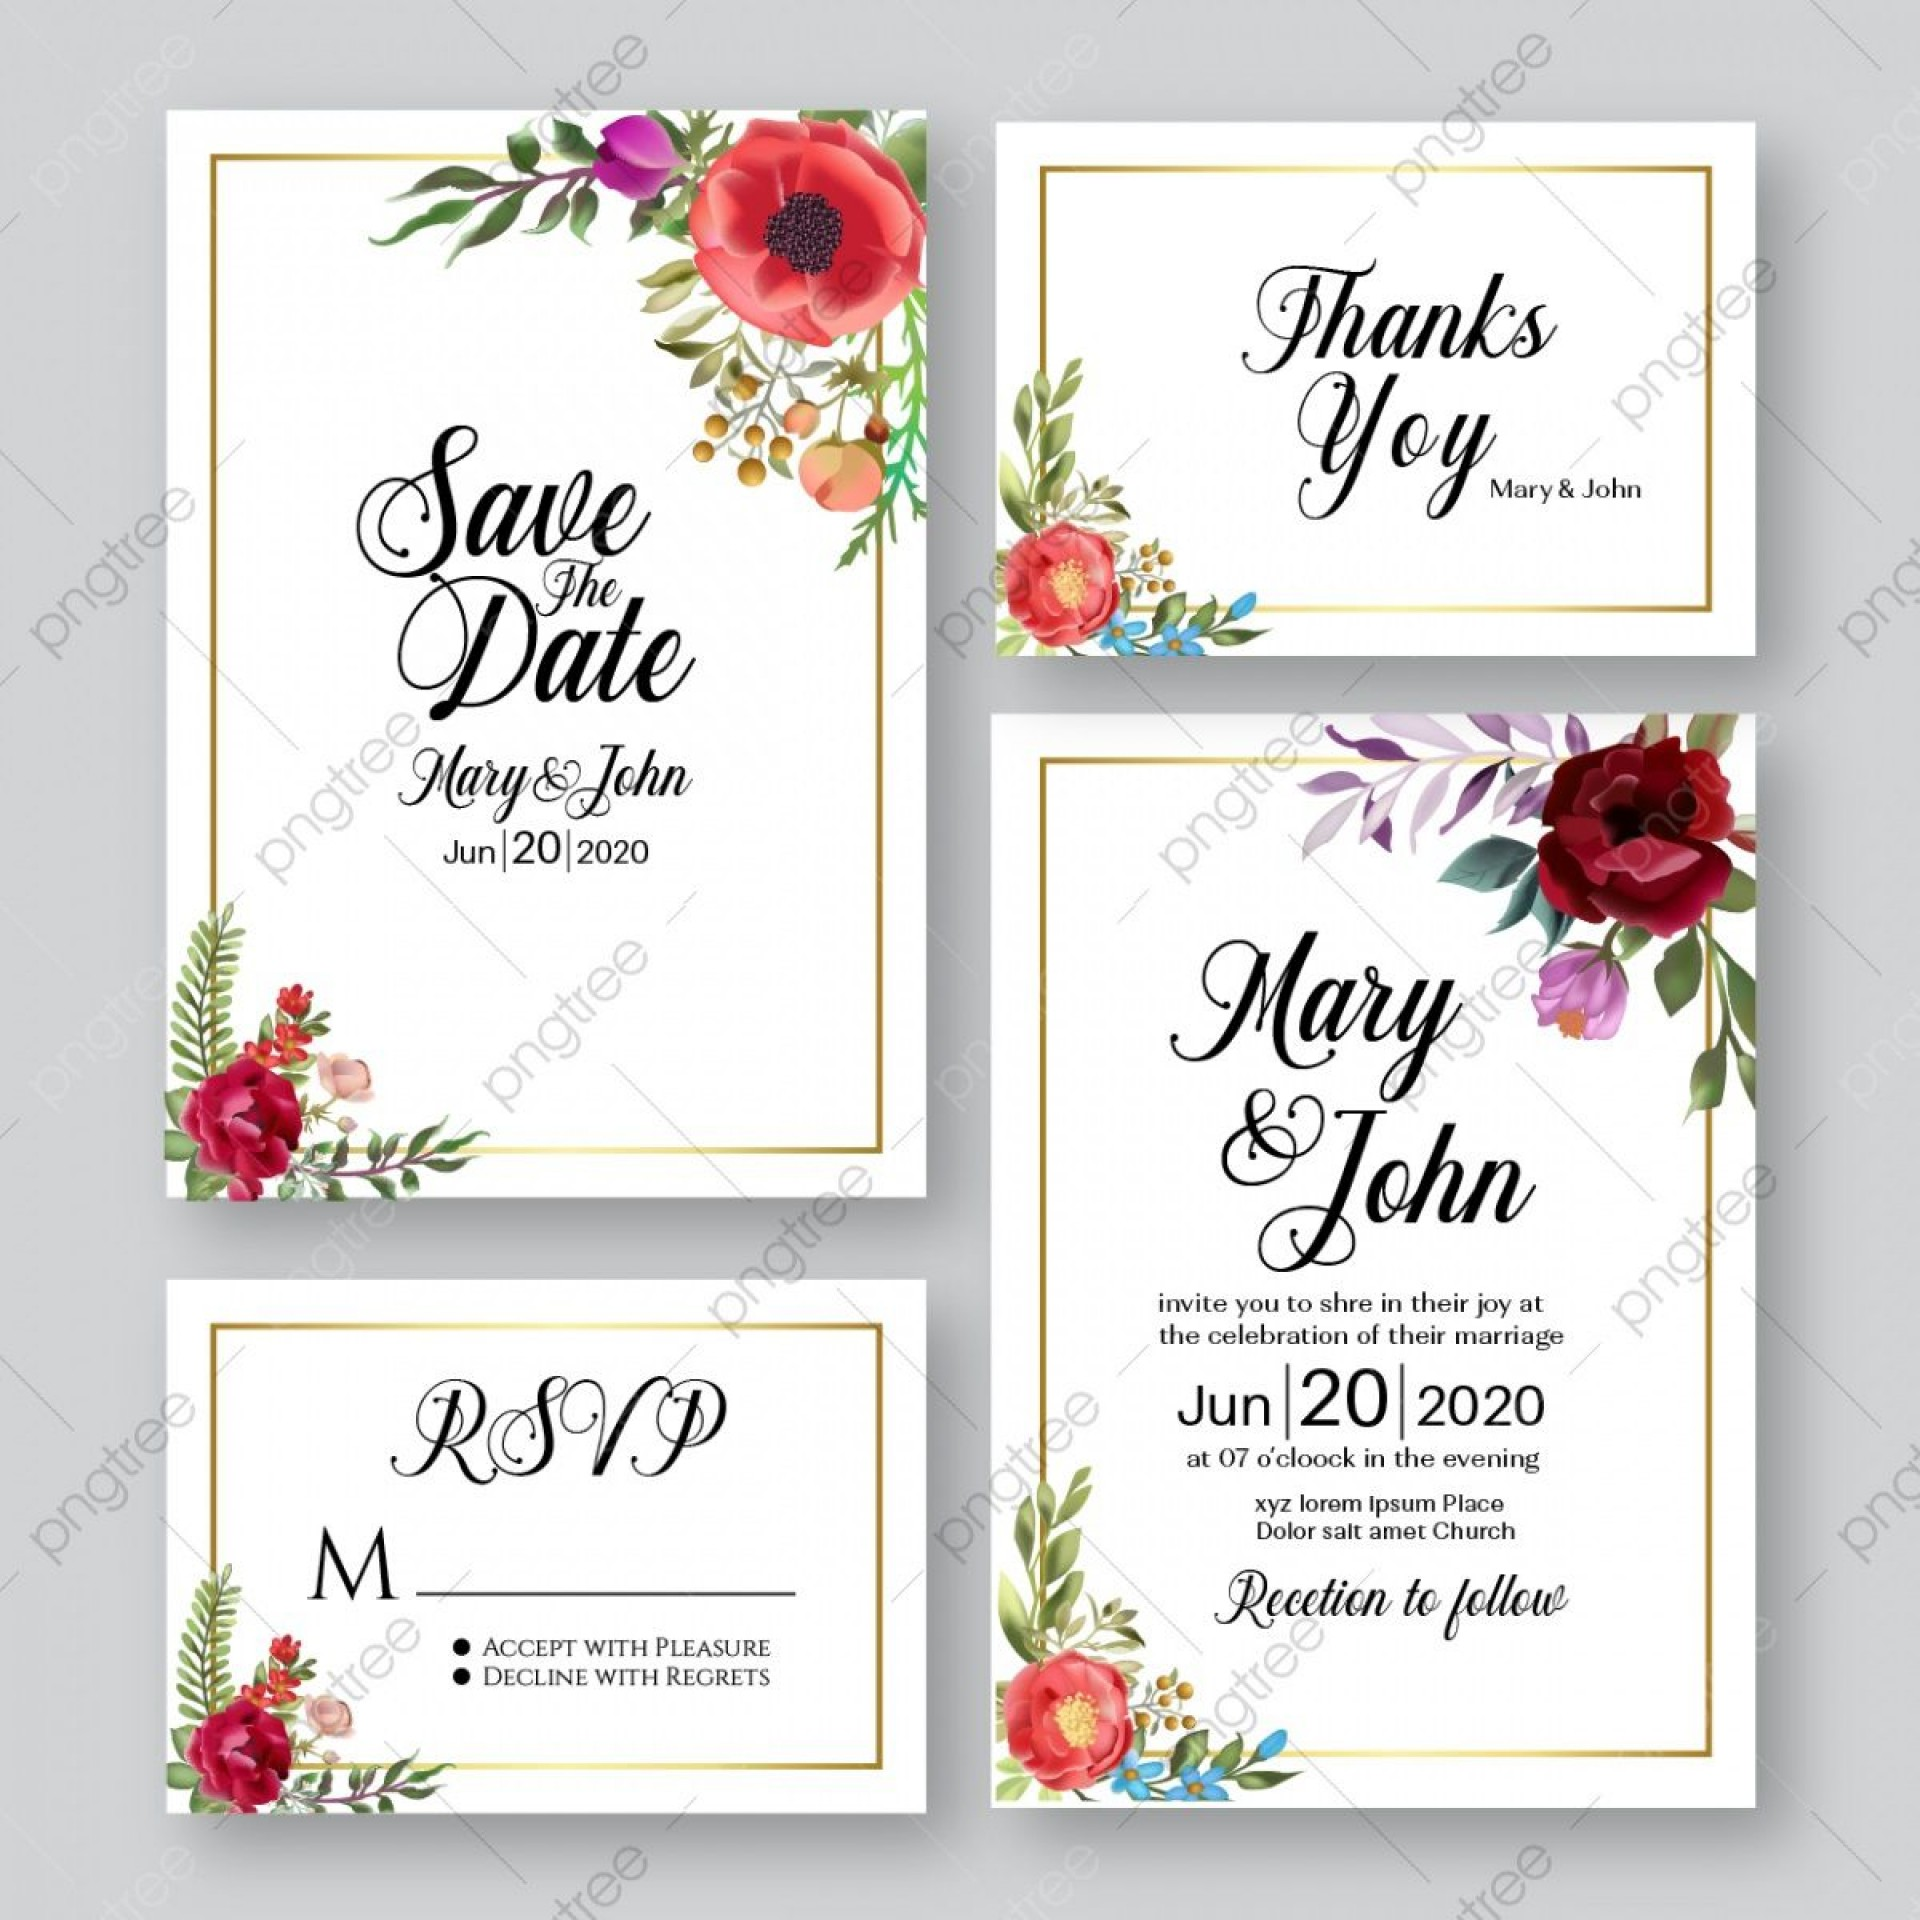 009 Excellent Free Download Invitation Card Template Highest Clarity  Templates Indian Wedding Design Software Png1920